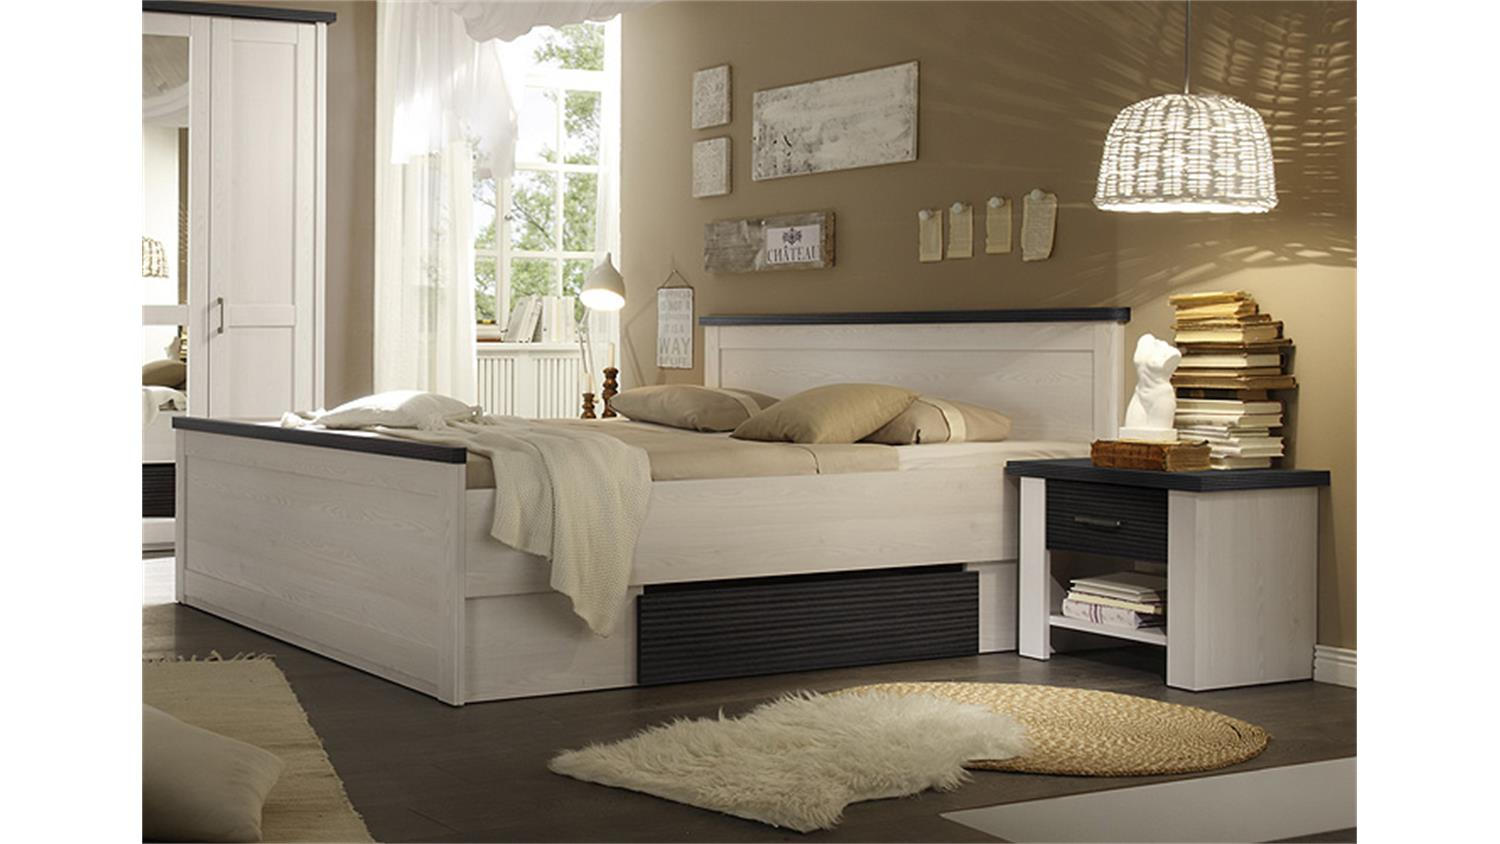 bettanlage luca pinie wei touchwood 180x200 inkl nakos. Black Bedroom Furniture Sets. Home Design Ideas